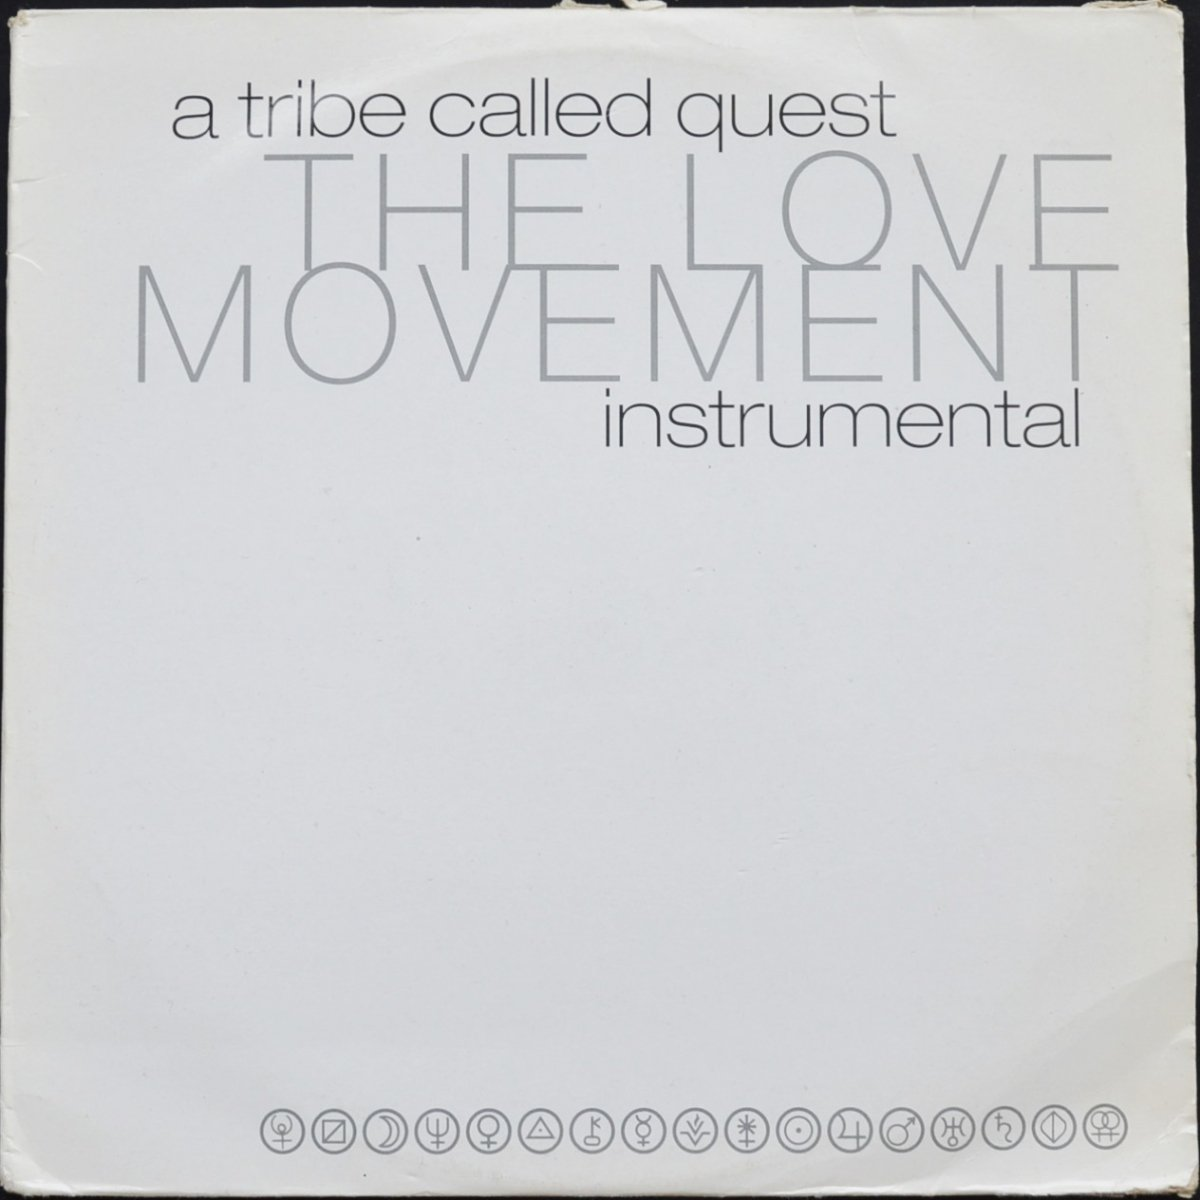 A TRIBE CALLED QUEST / THE LOVE MOVEMENT INSTRUMENTAL (2LP)